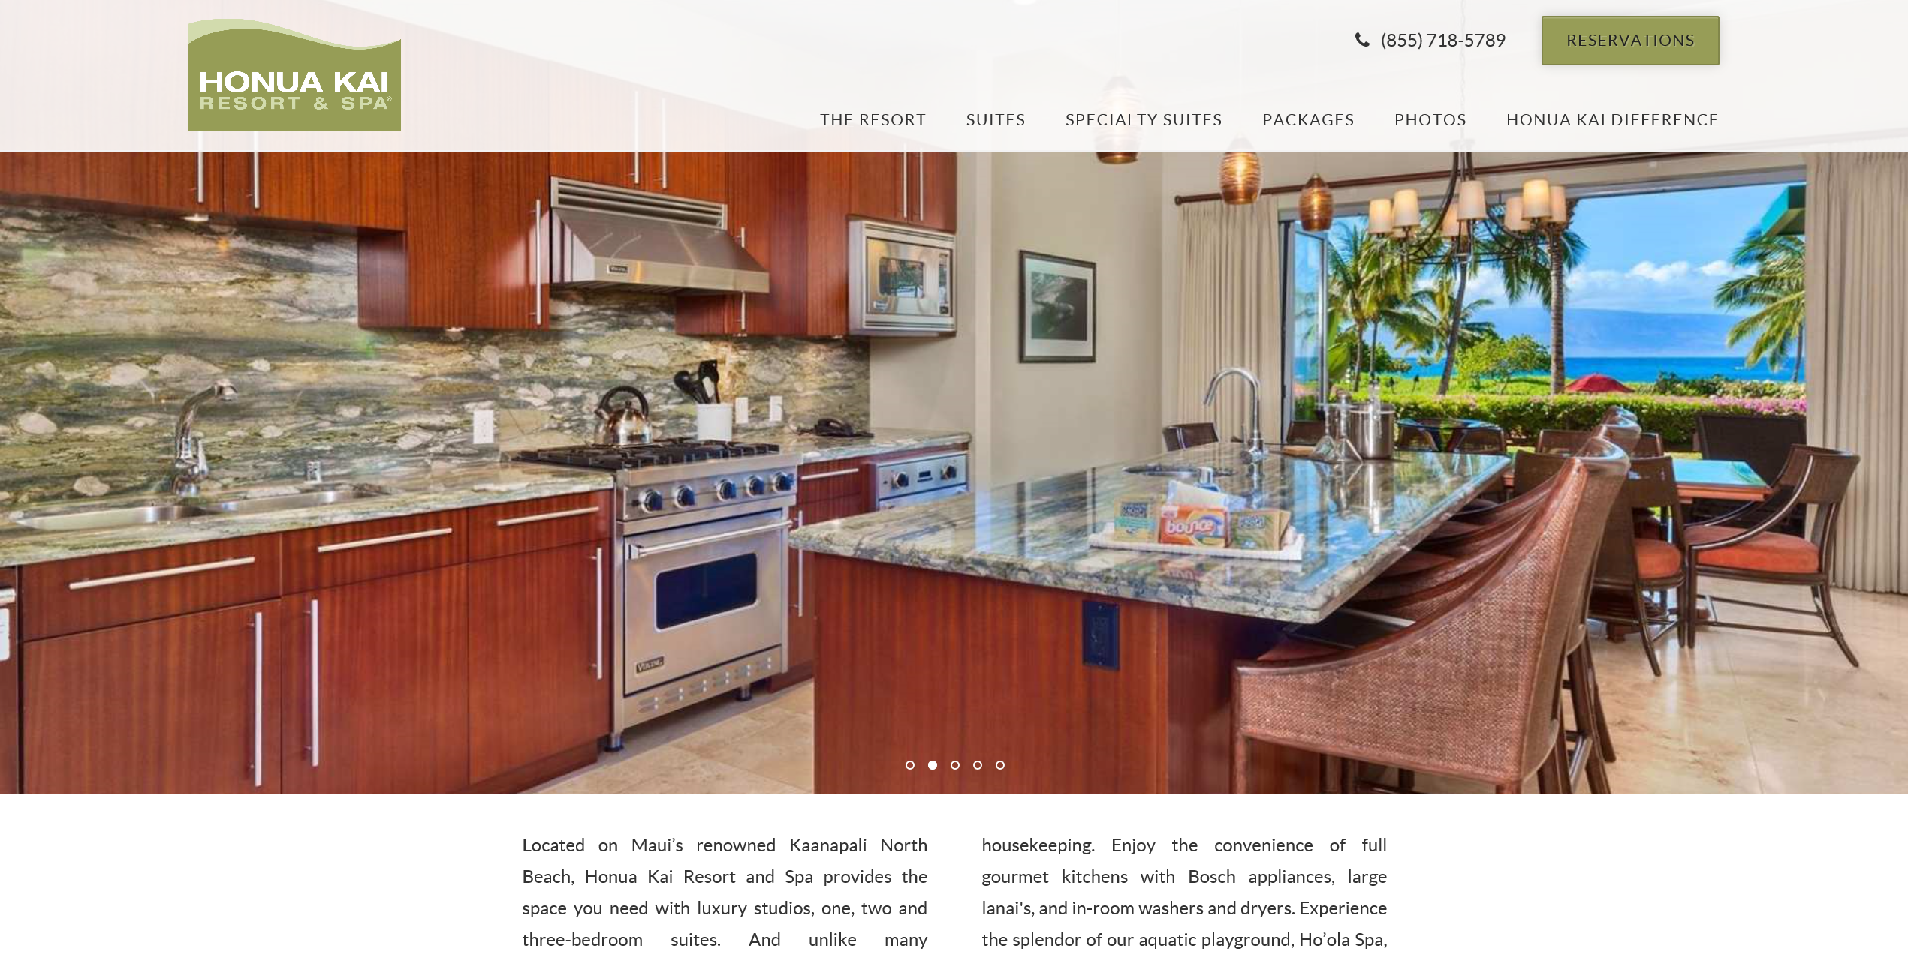 Honua Kai Resort, Web Site, Design, Team Vision, Marketing, Advertising, Honolulu, Hawaii